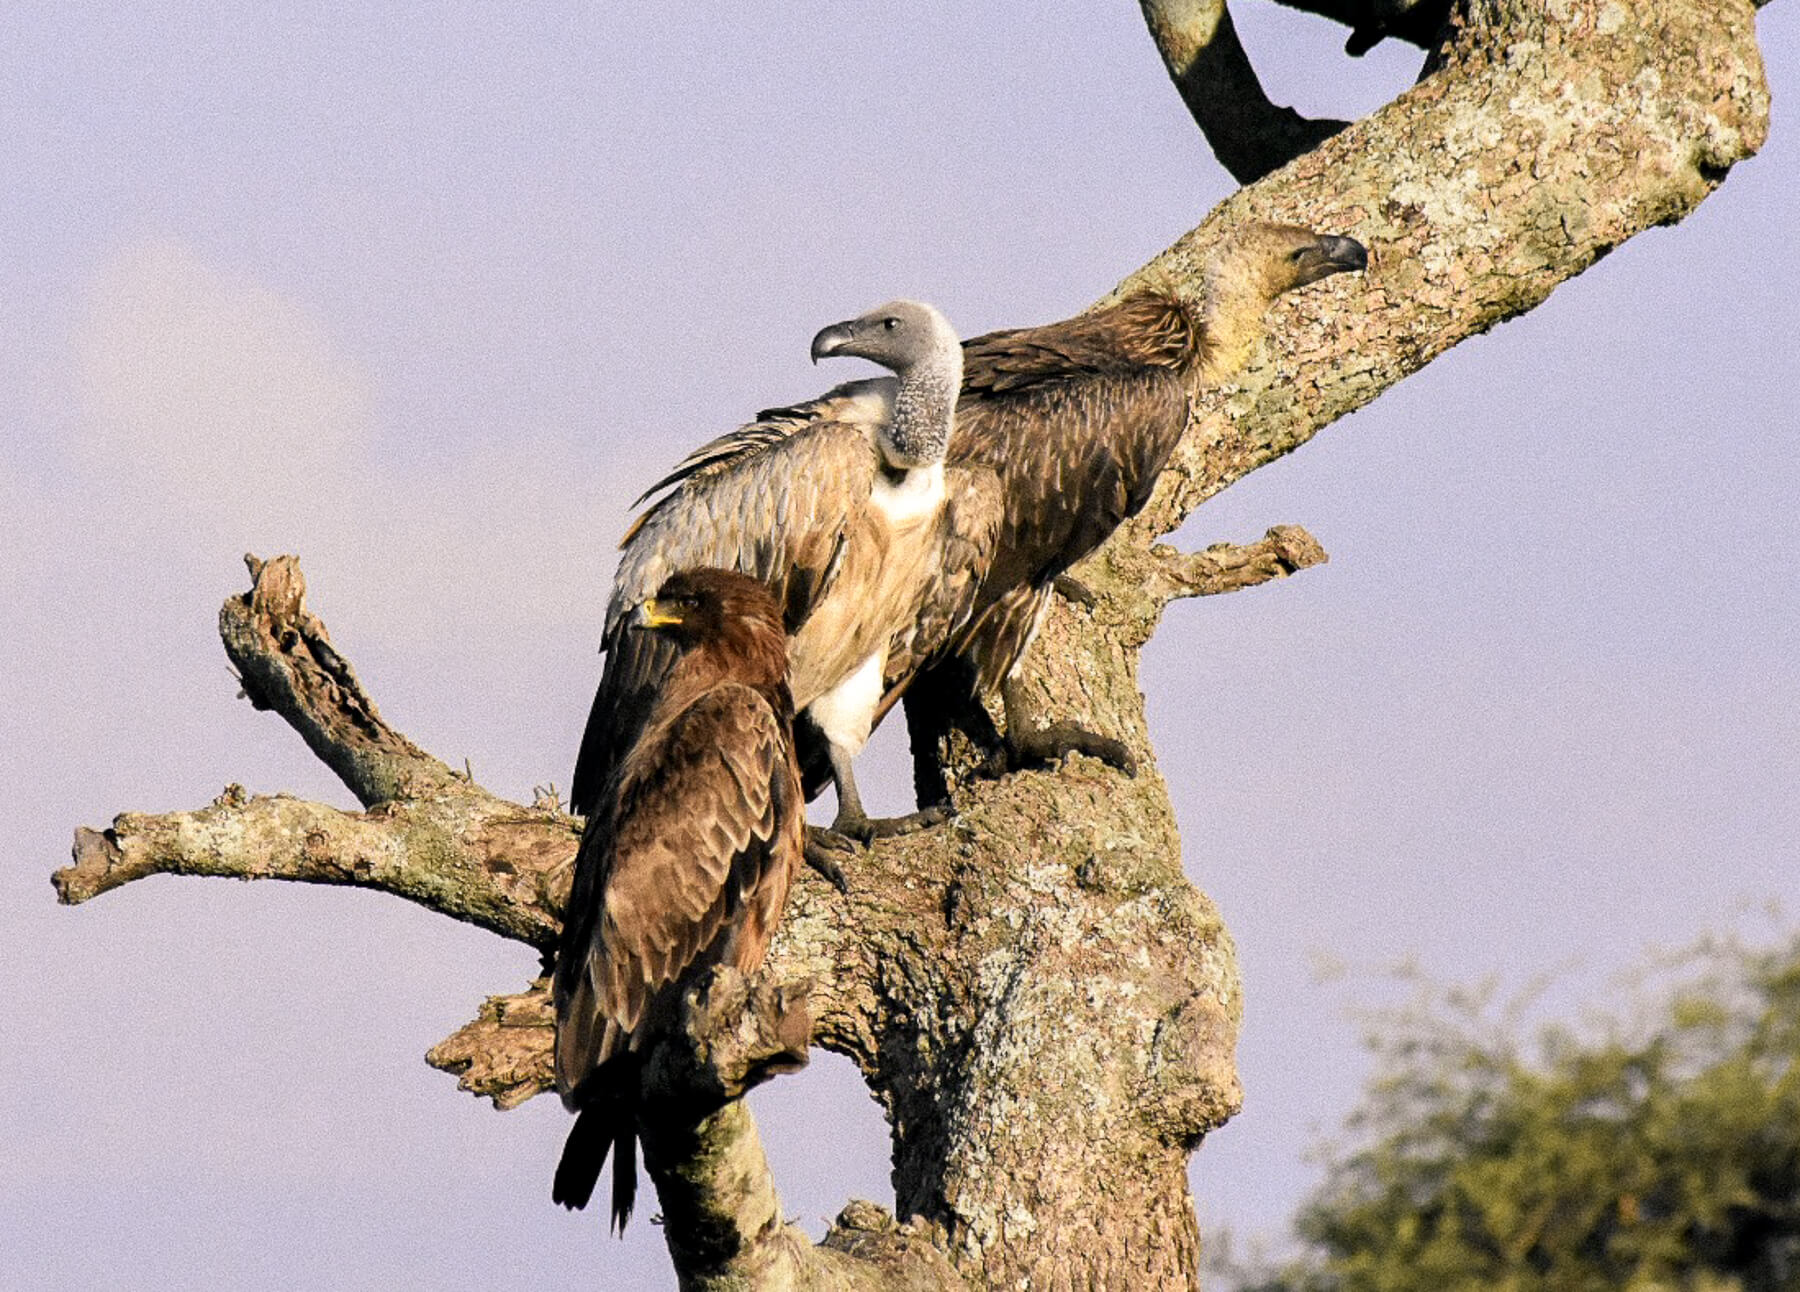 2 vultures and an eagle perched on the trunk of a bare, bendy tree